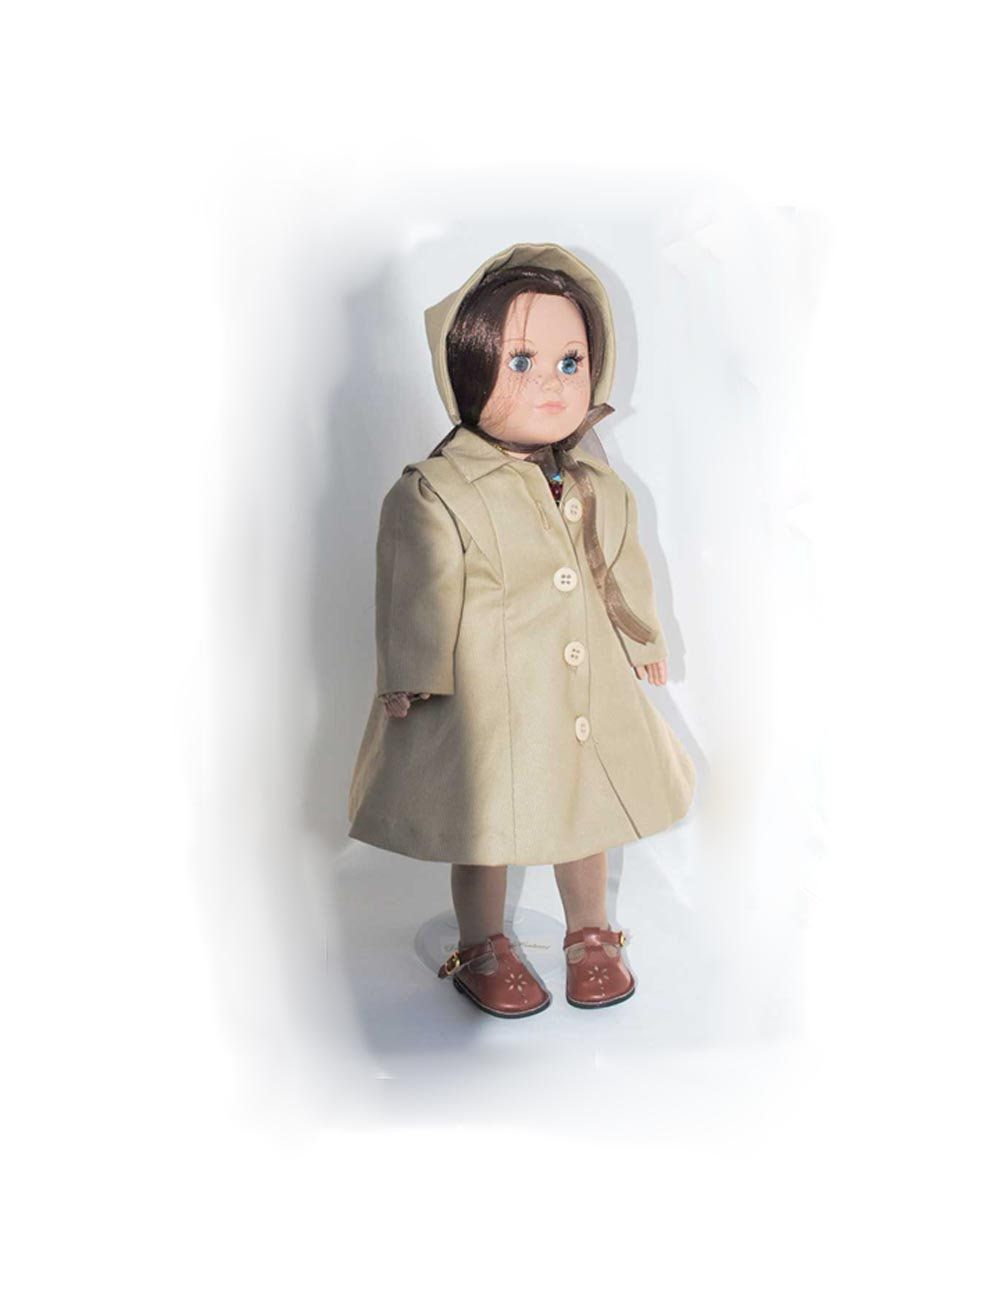 d4c5202ece8e 18 inch Girl Doll Winter Coat Easter Dress - Brown Mary Jane Shoes ...